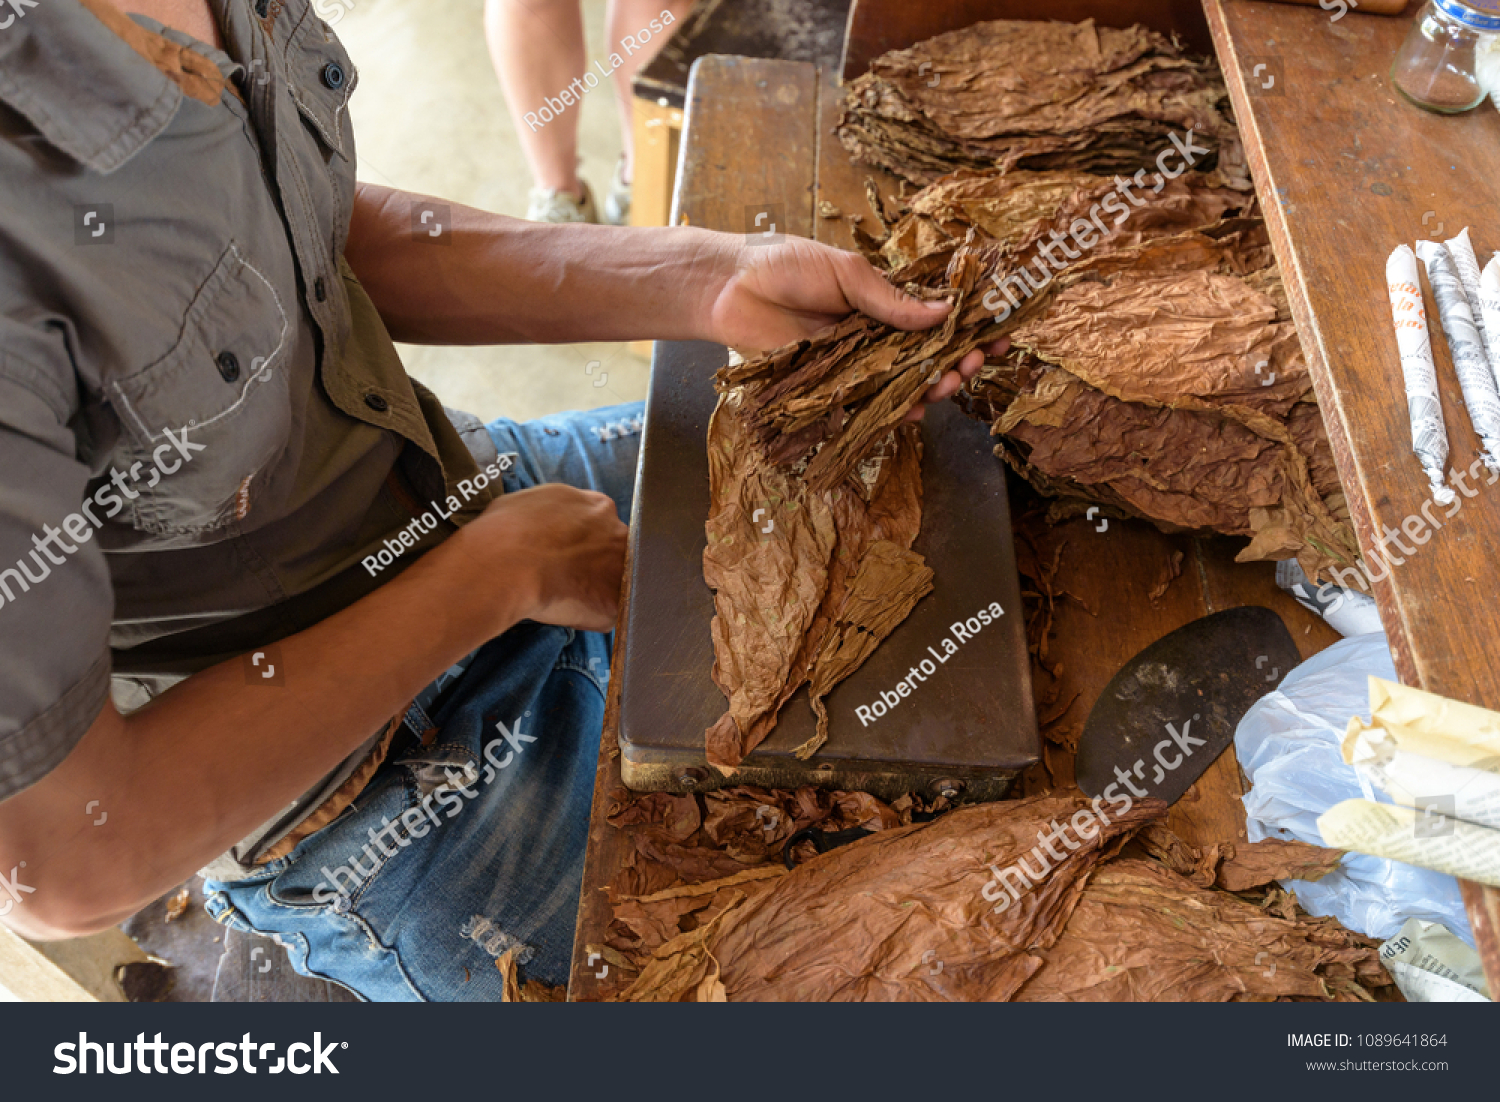 Demonstration Production Handmade Cigars Close On Stock